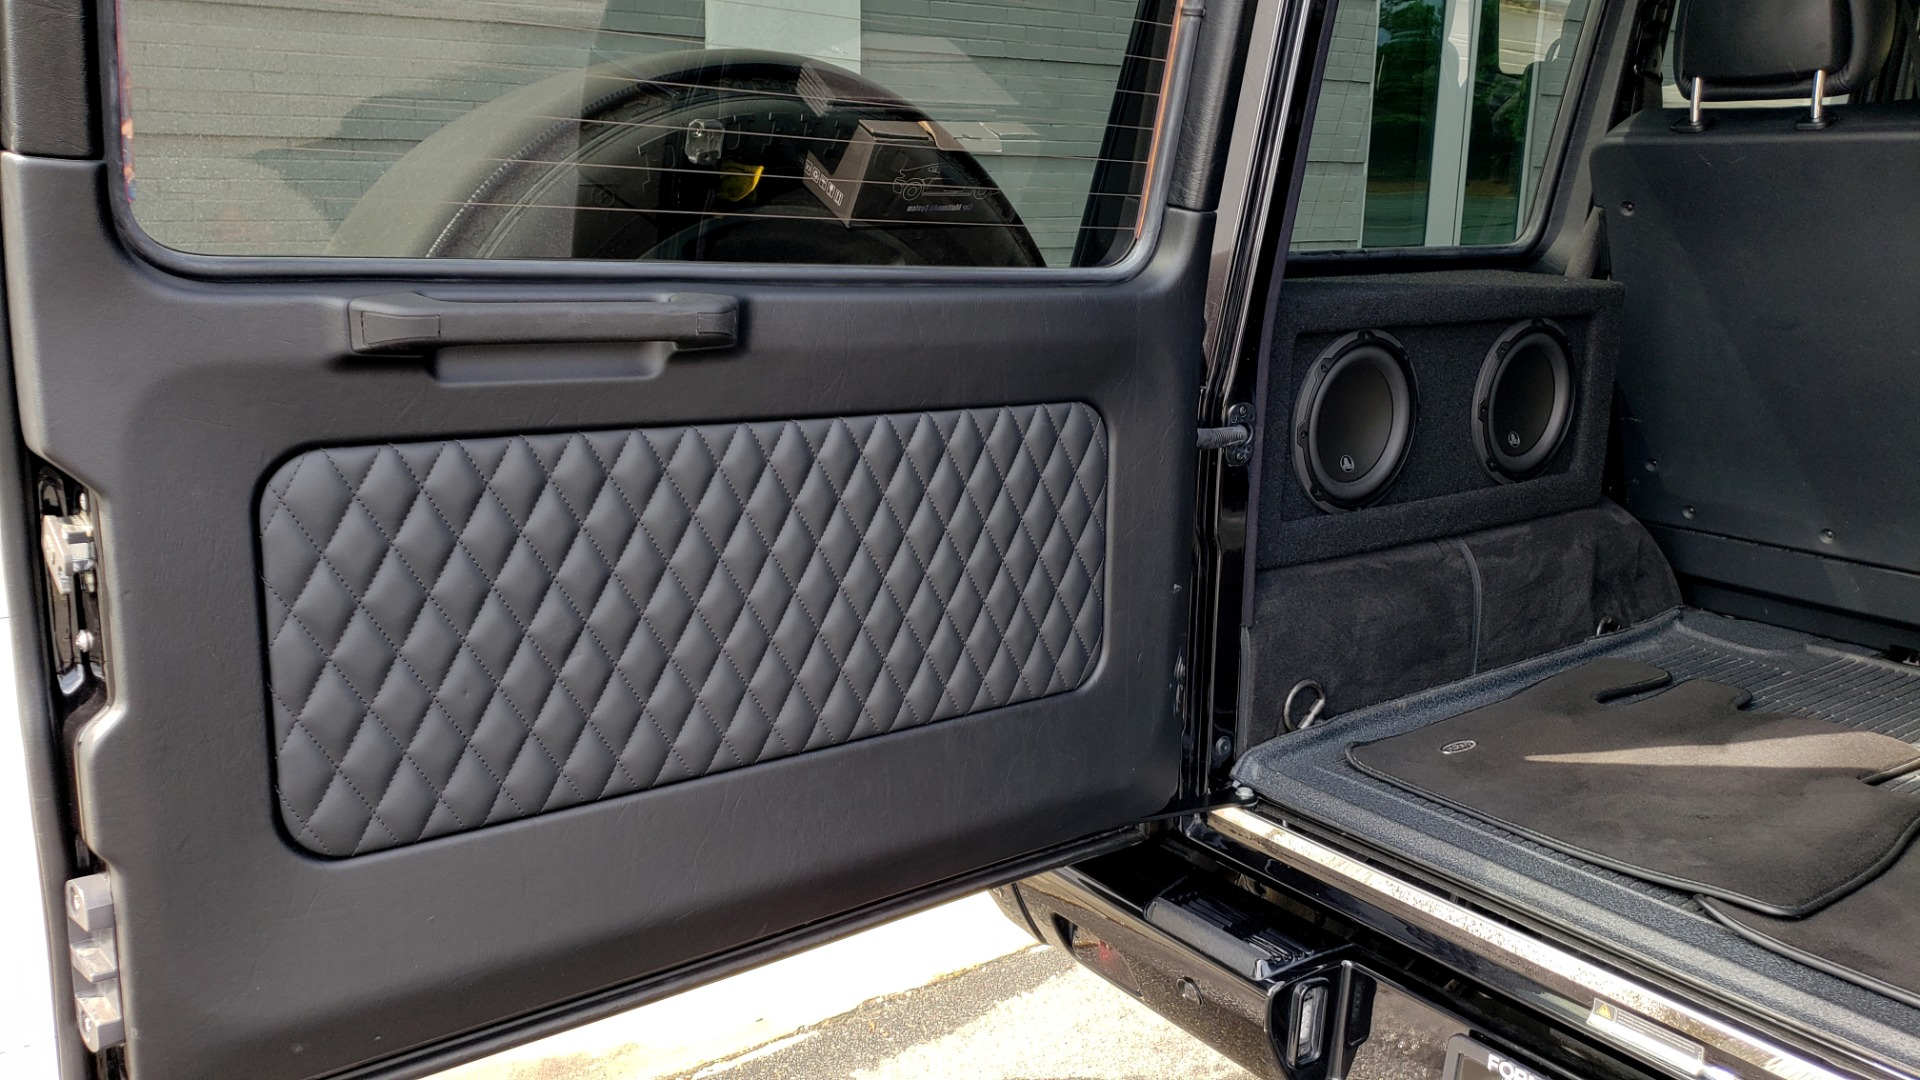 Used 2016 Mercedes-Benz G-CLASS AMG G 63 4MATIC / NAV / SUNROOF / H/K SND / ENT SYS / REARVIEW for sale $99,000 at Formula Imports in Charlotte NC 28227 30